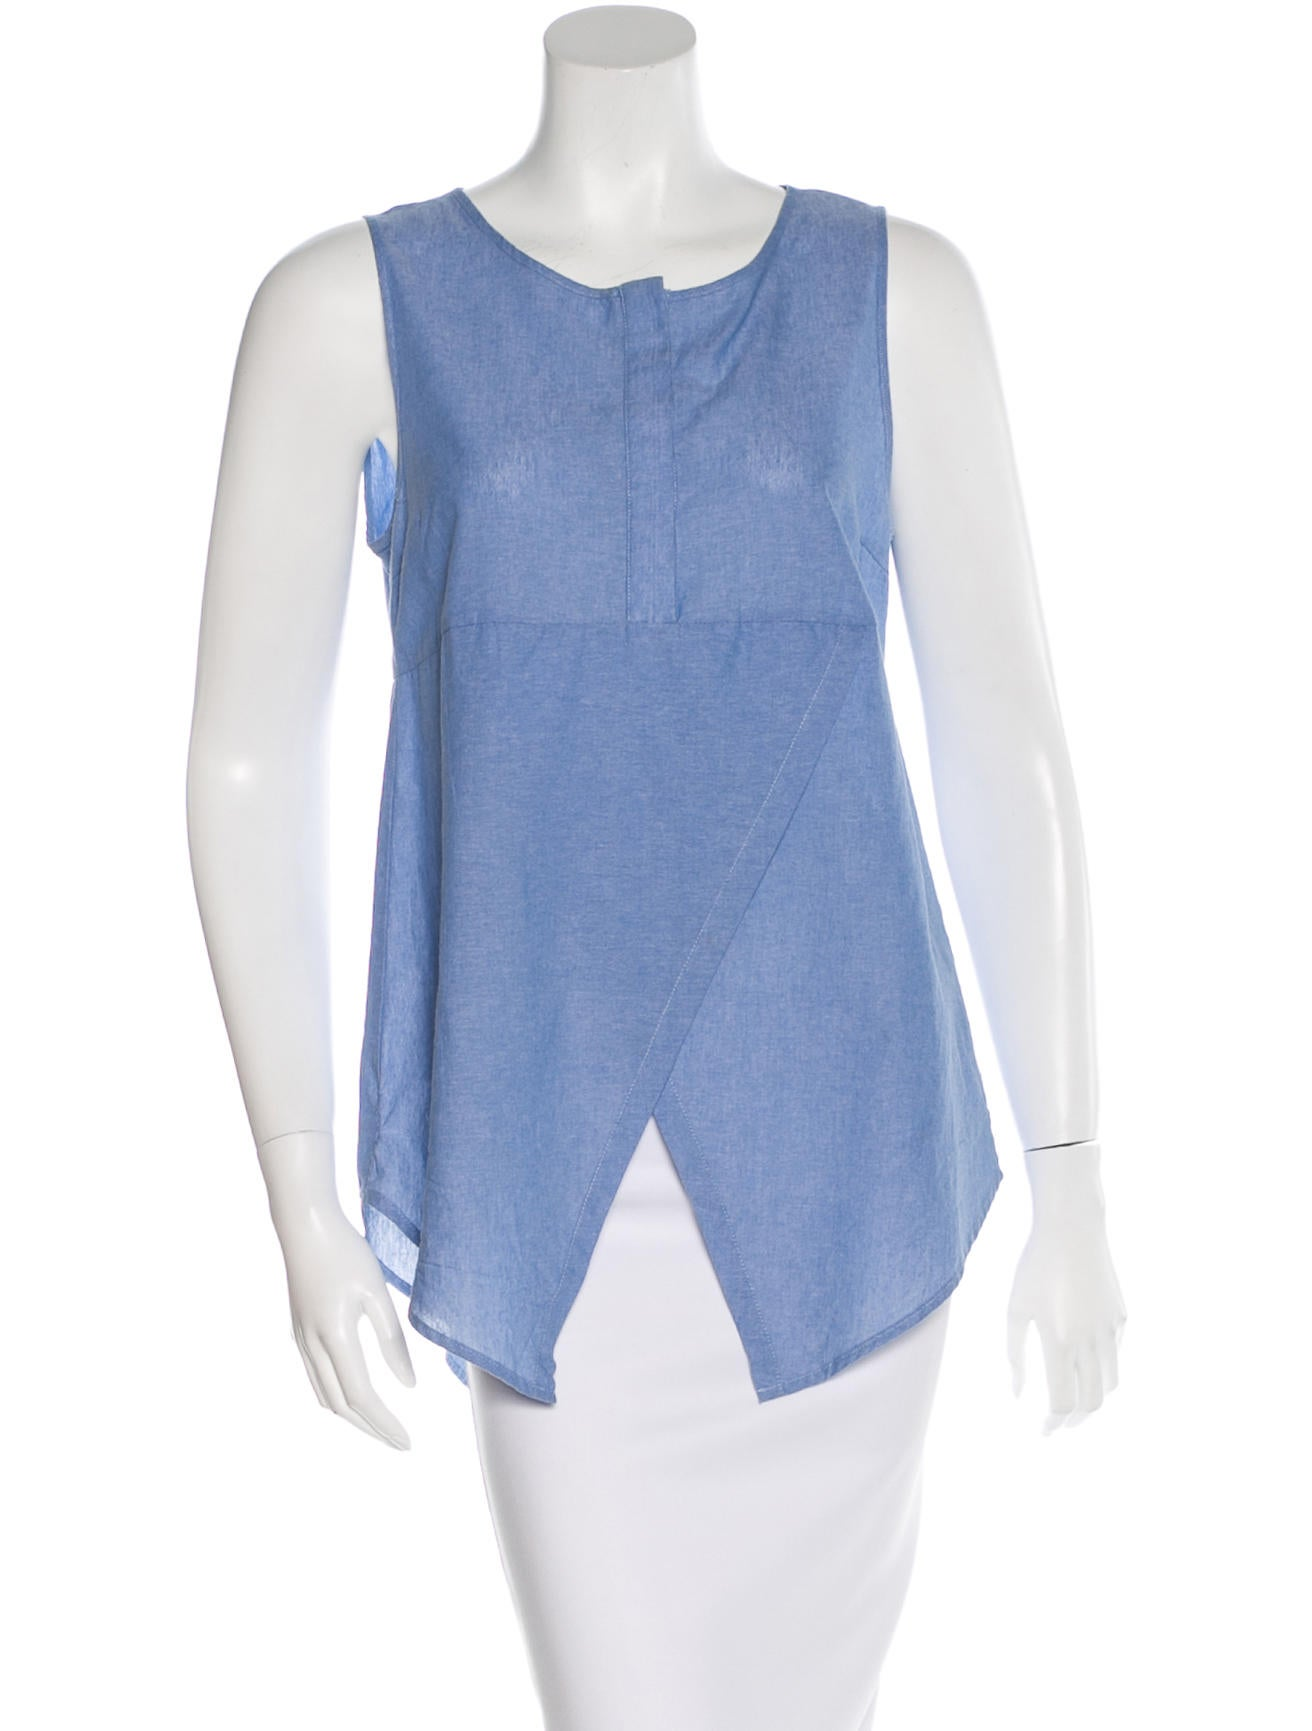 Derek lam 10 crosby chambray sleeveless top clothing for Chambray top